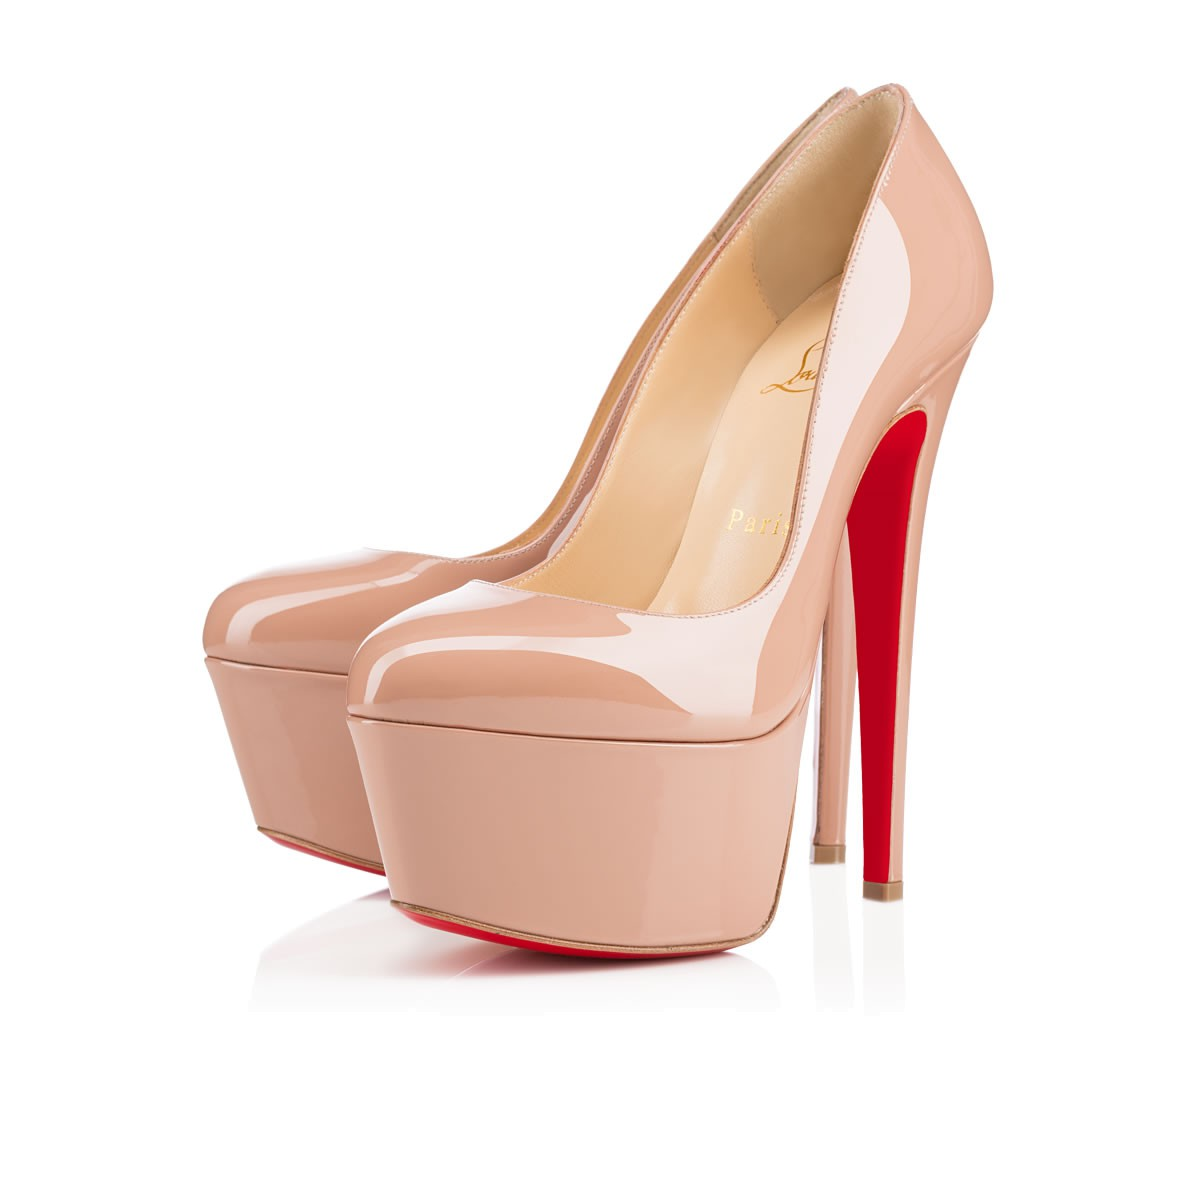 cc8a7a7a4cb ... discount code for christian louboutin daffodile 160mm nude patent  leather a1a6e 9040f ...